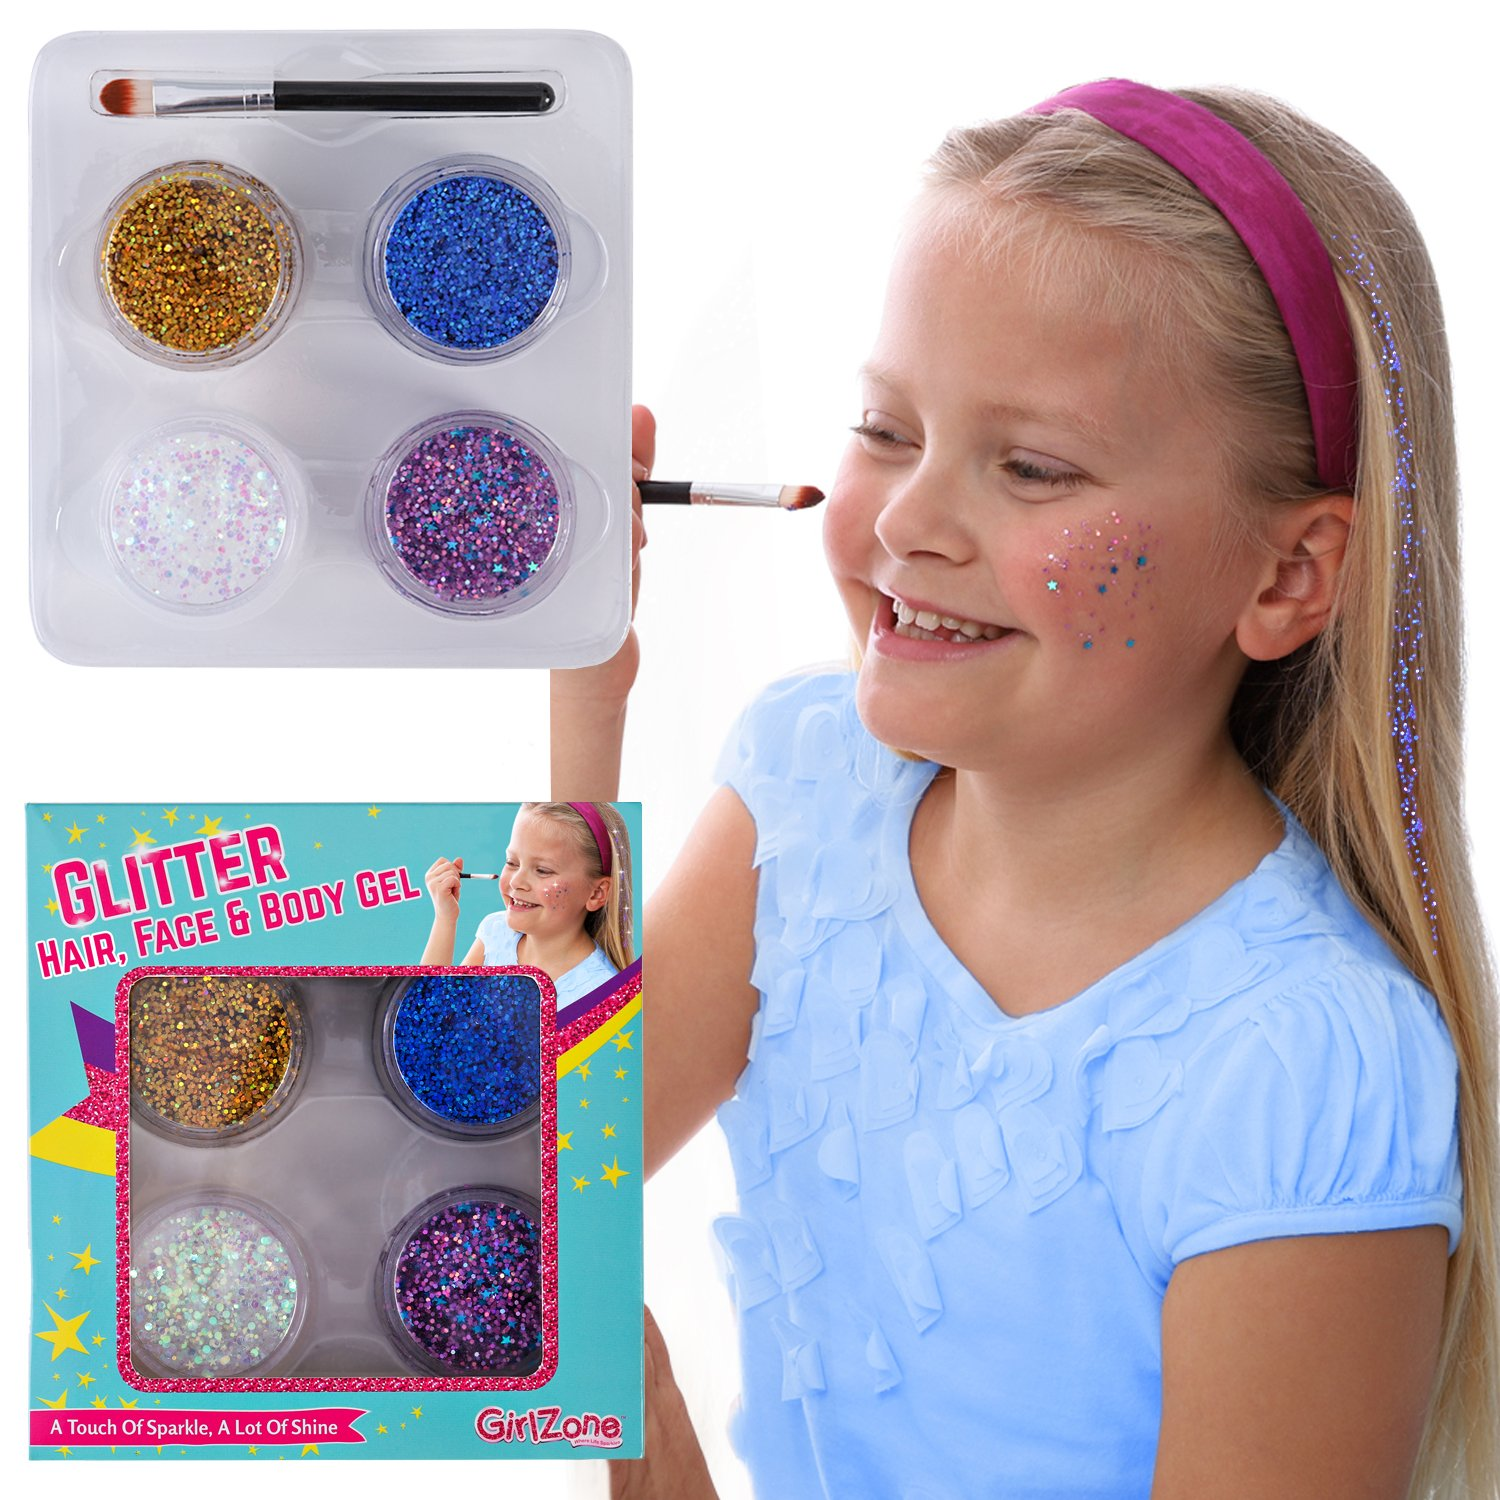 GirlZone GIFTS FOR GIRLS: Face, Hair & Body Cosmetic Glitter Makeup. Great Gift, Birthday Present Idea For Girls 4 5 6 7 8 9 10 years old plus. by GirlZone (Image #8)